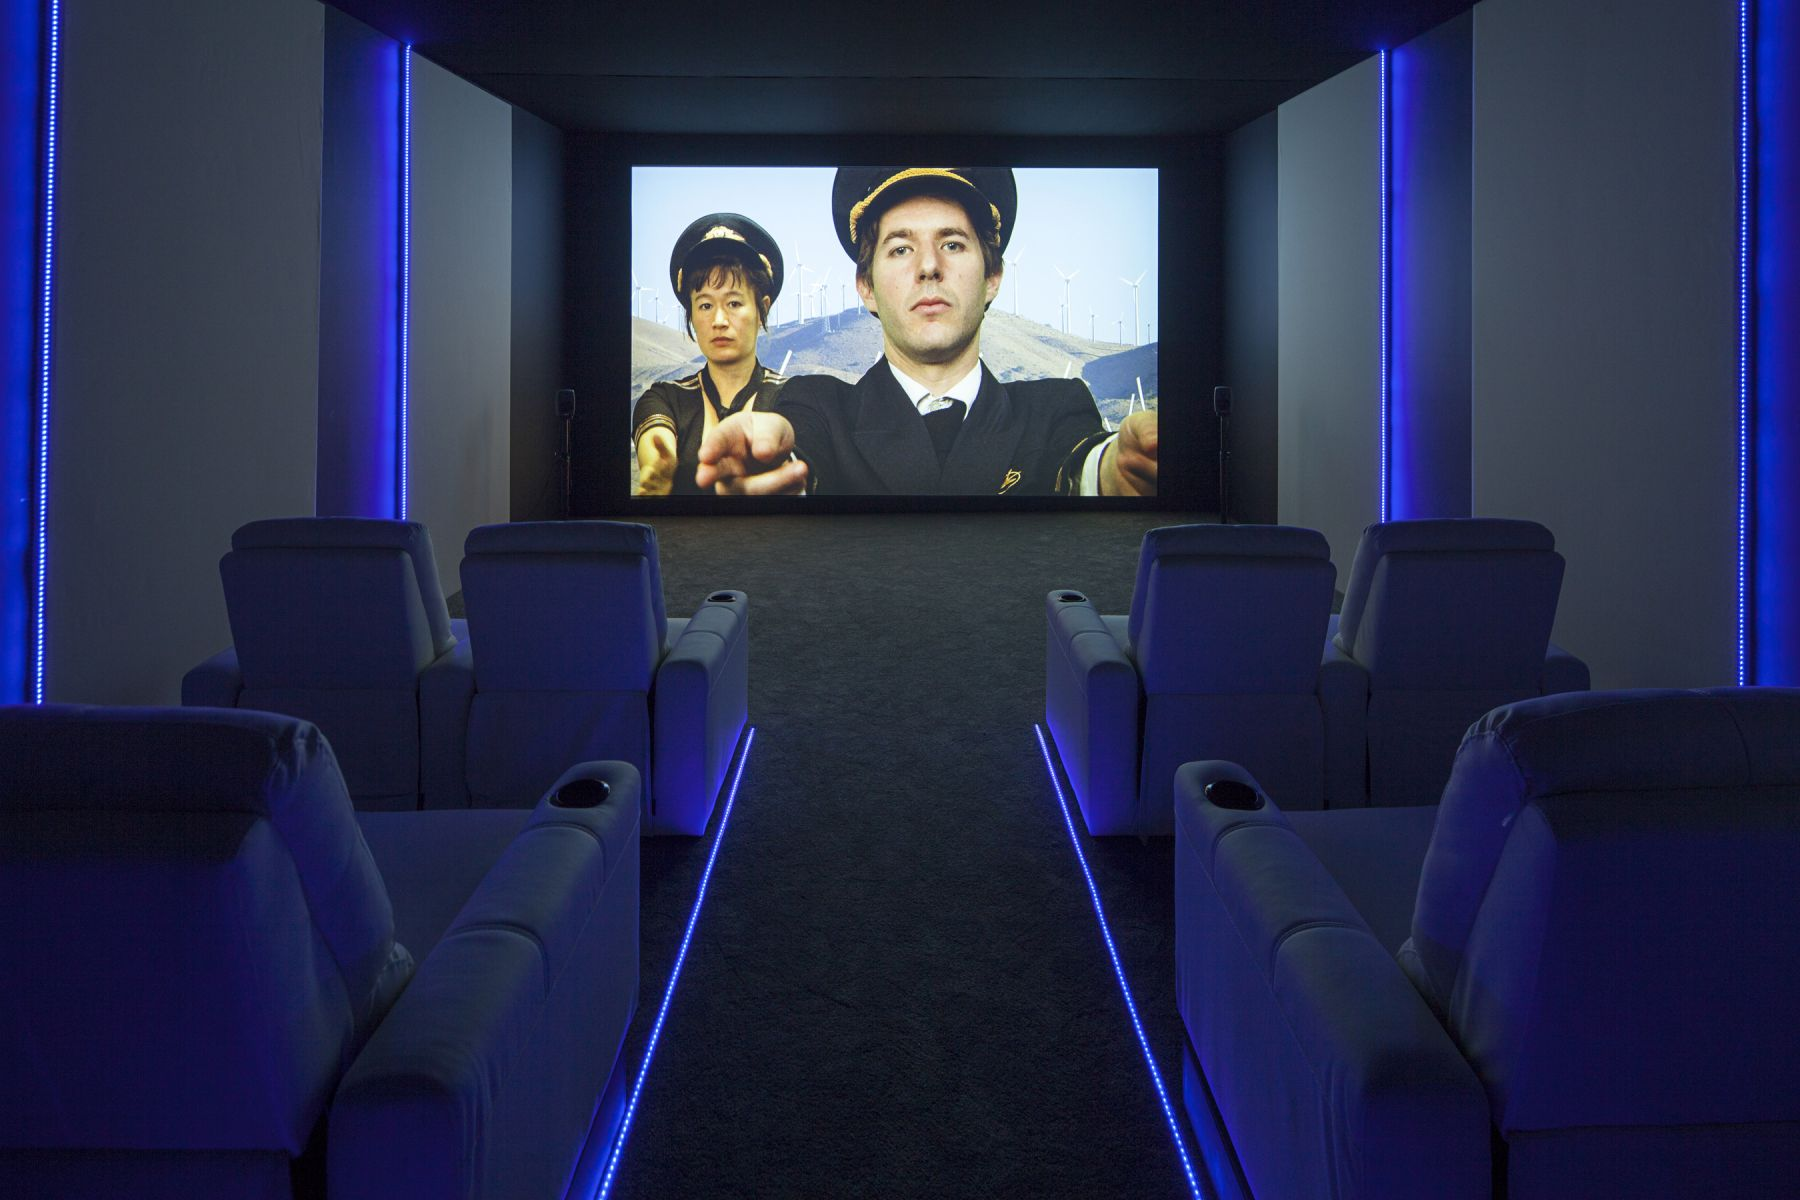 Hito Steyerl, Artists Space, New York